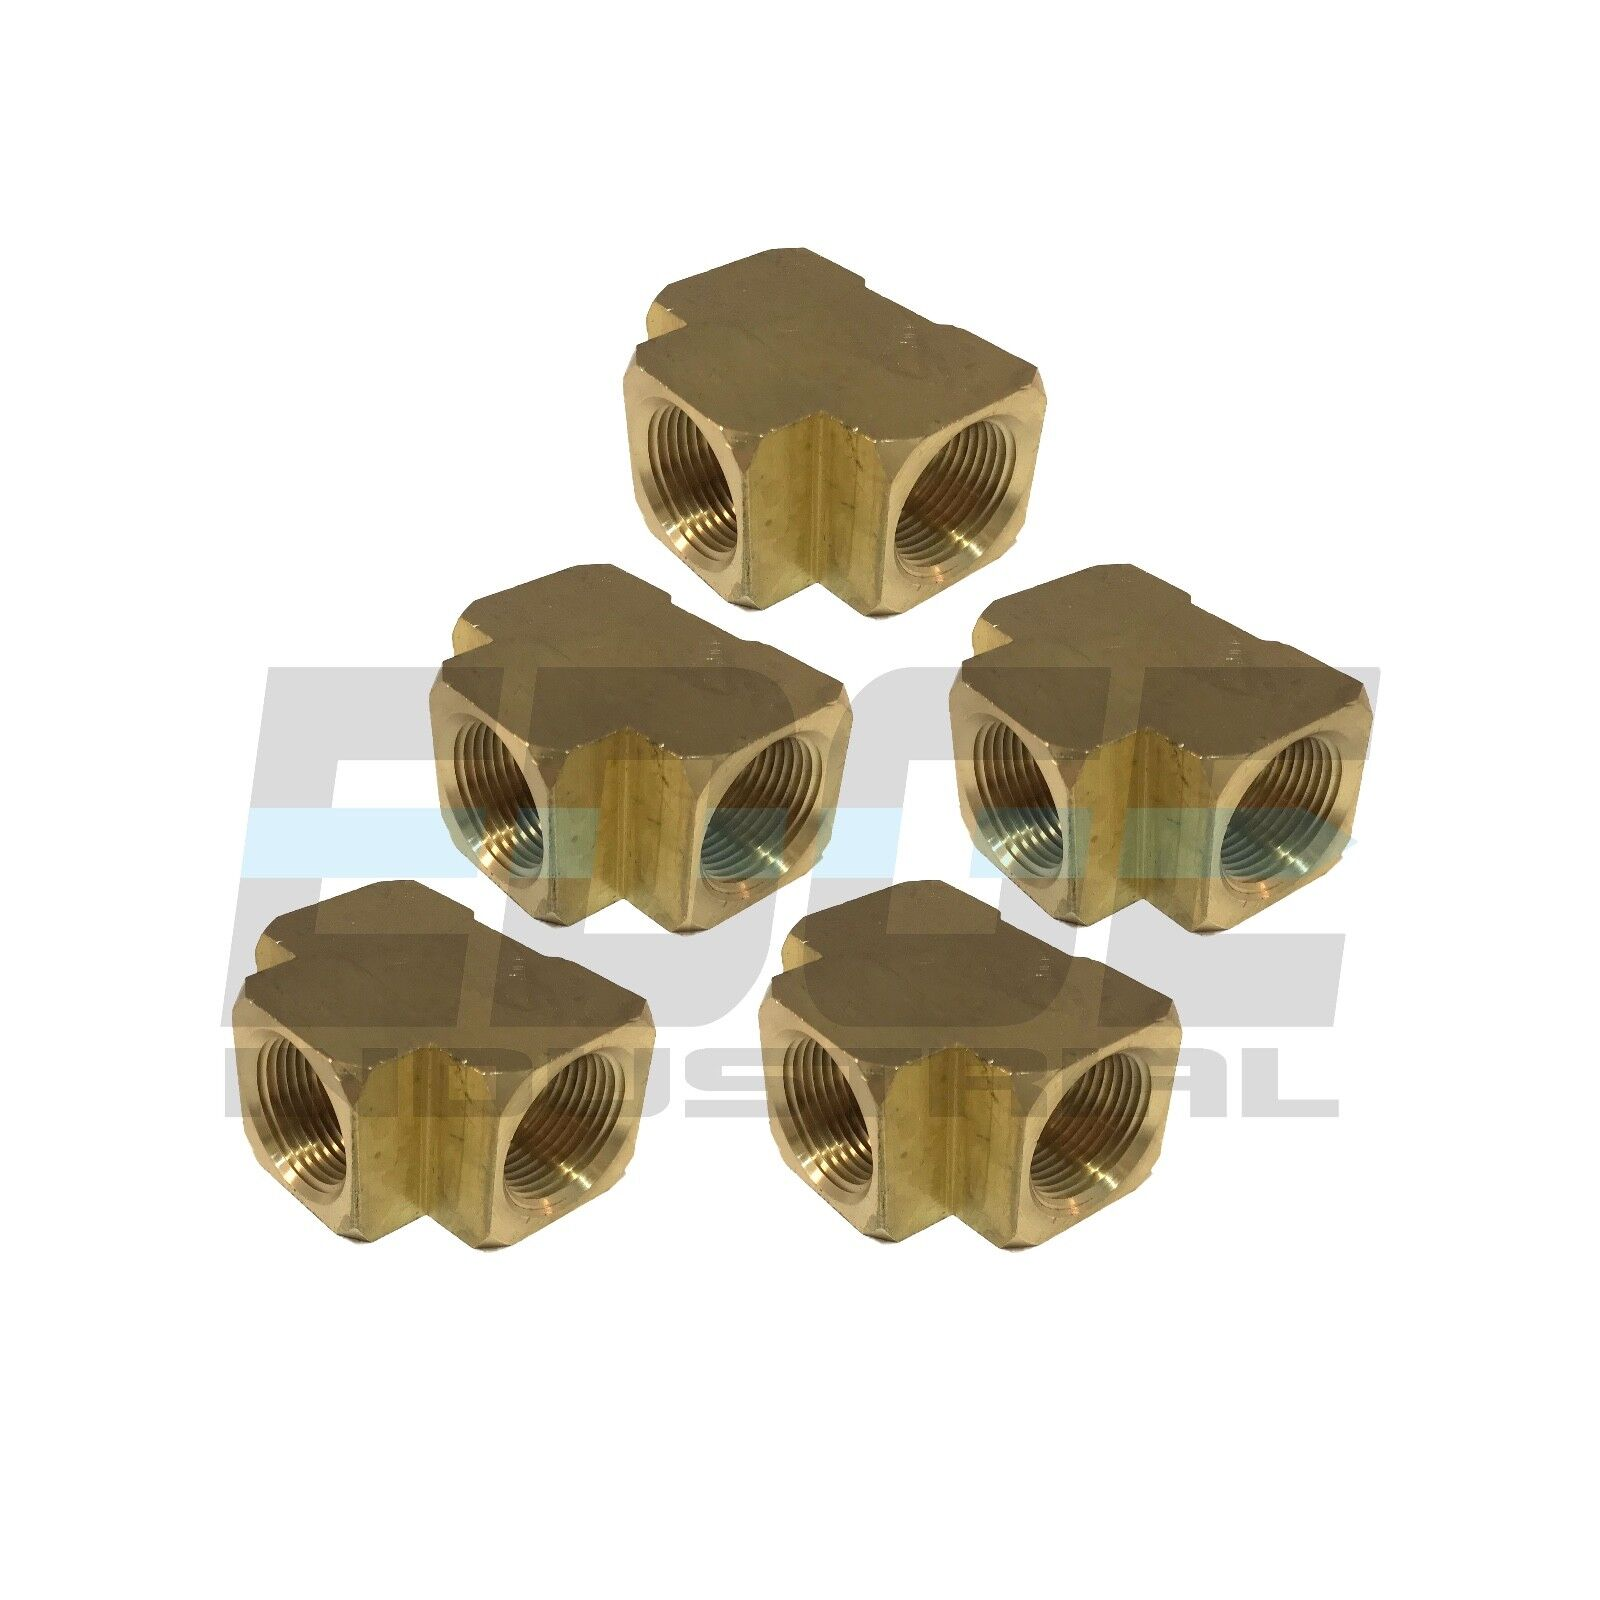 BRASS TEE Fitting EQUAL T 3 4  Female NPT Pipe Thread Tubing Air Fuel QTY 5